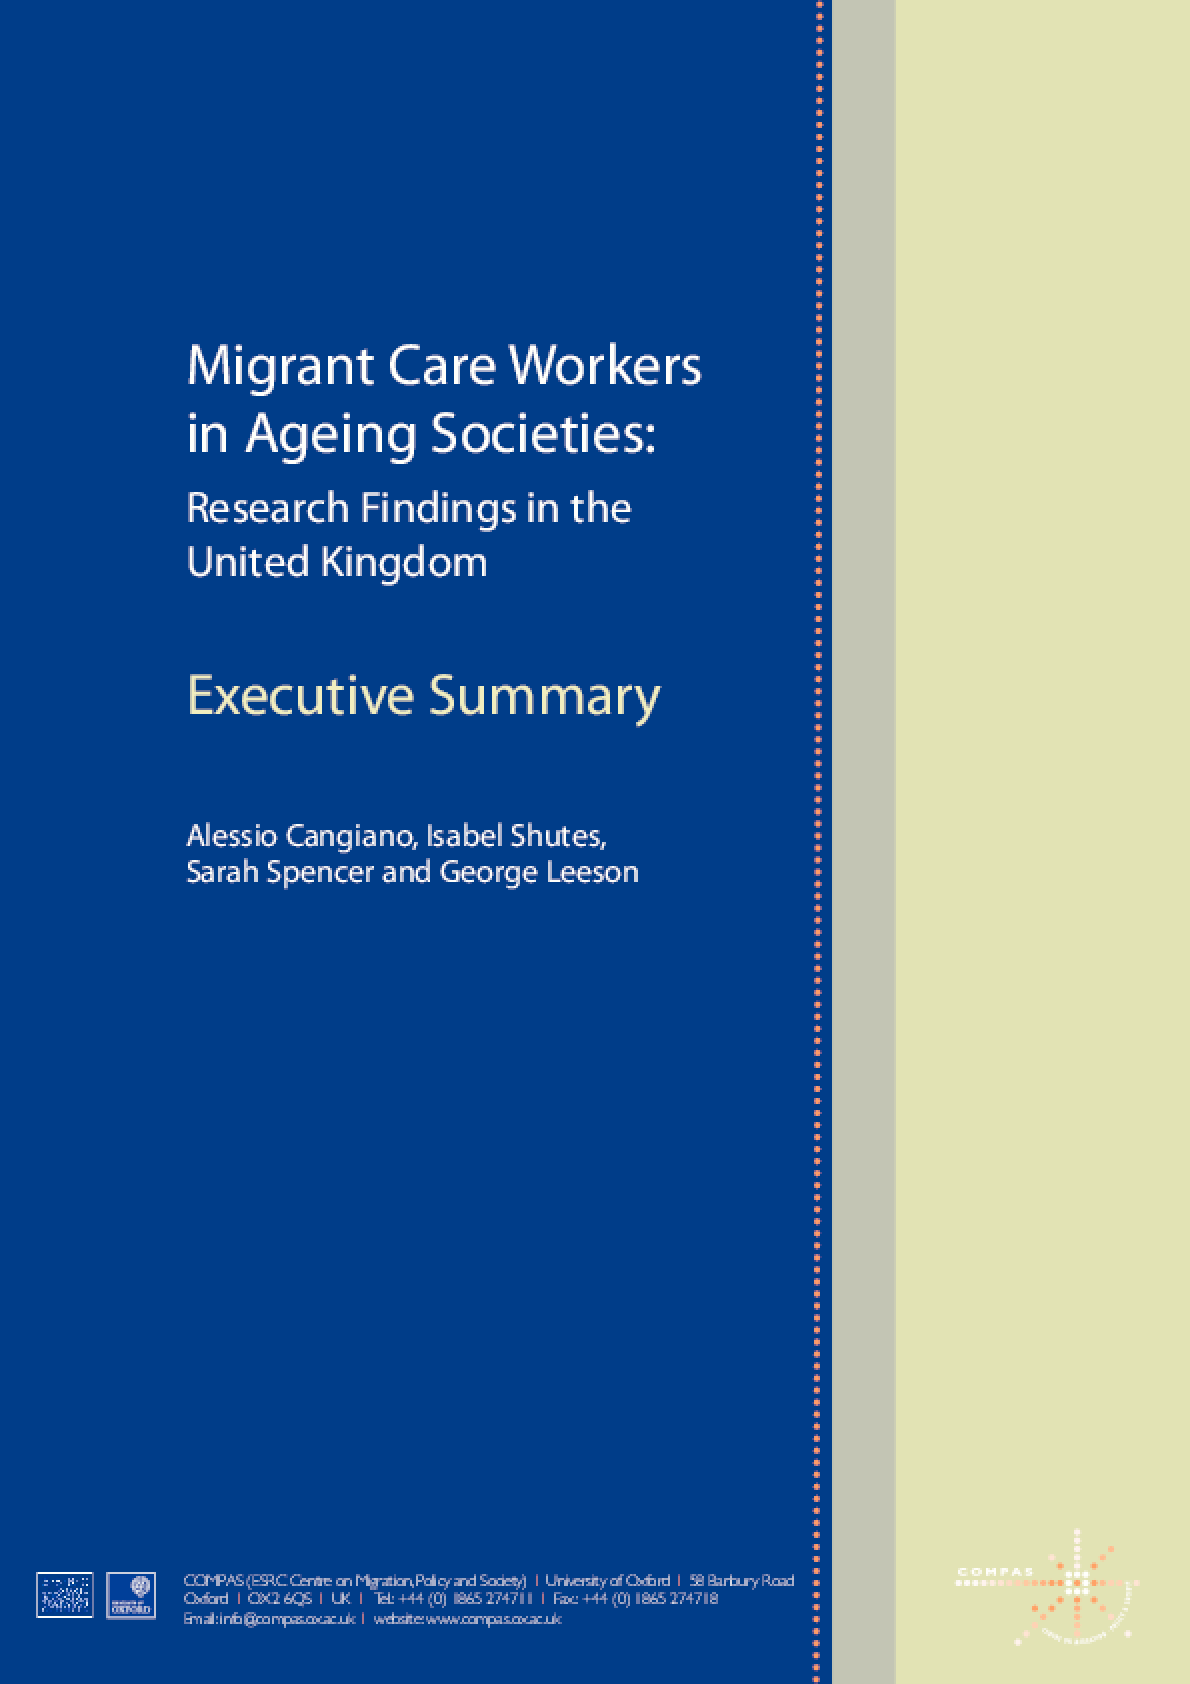 Migrant Care Workers in Ageing Societies: Research Findings in the United Kingdom